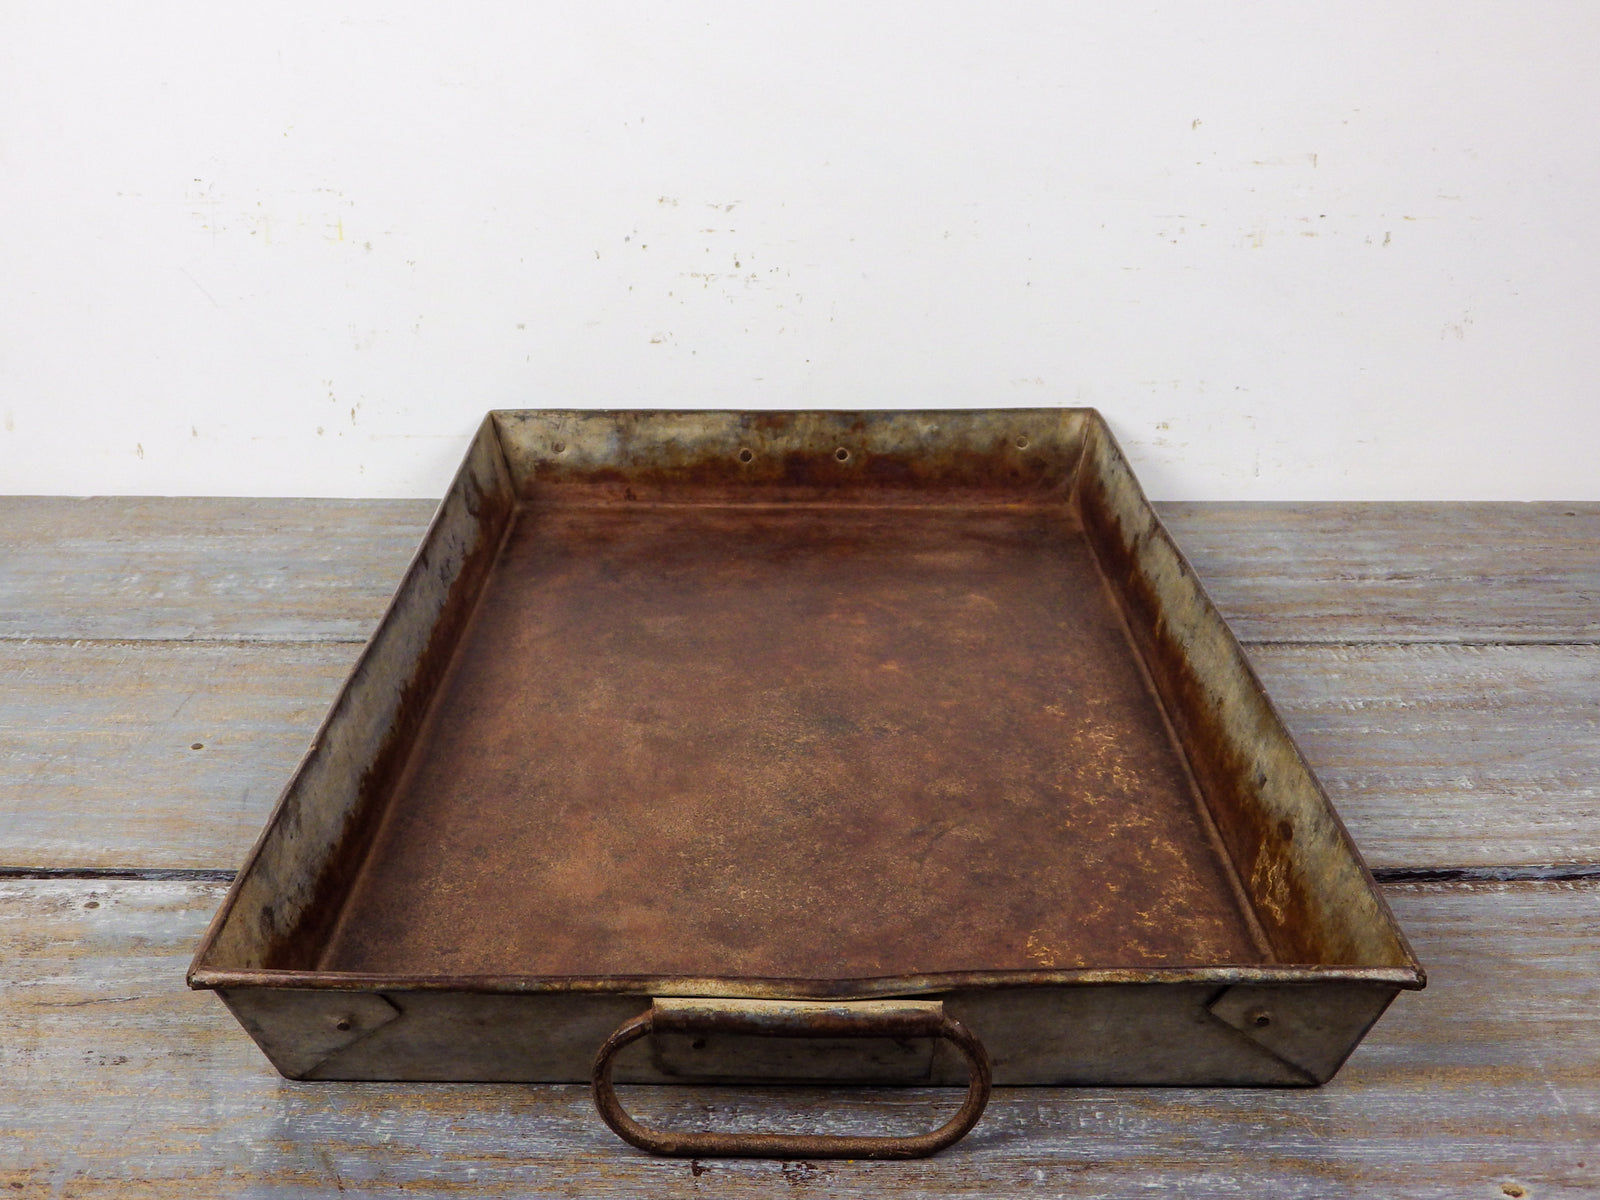 MILL-939 Metal Tray C8